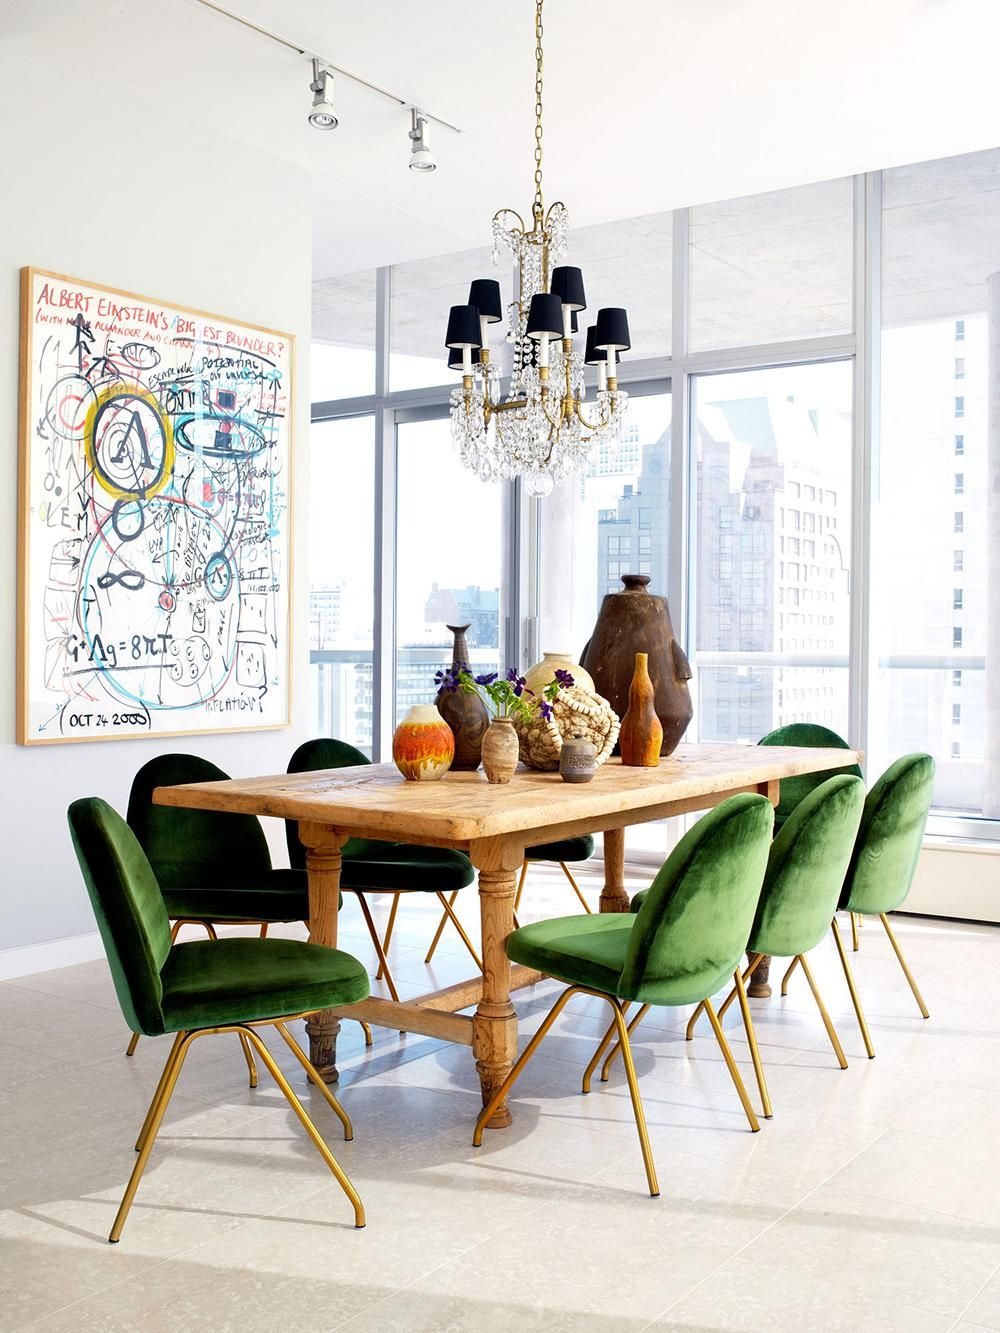 Greenery and wood go hand in hand and that makes this set look familiar in a very natural way